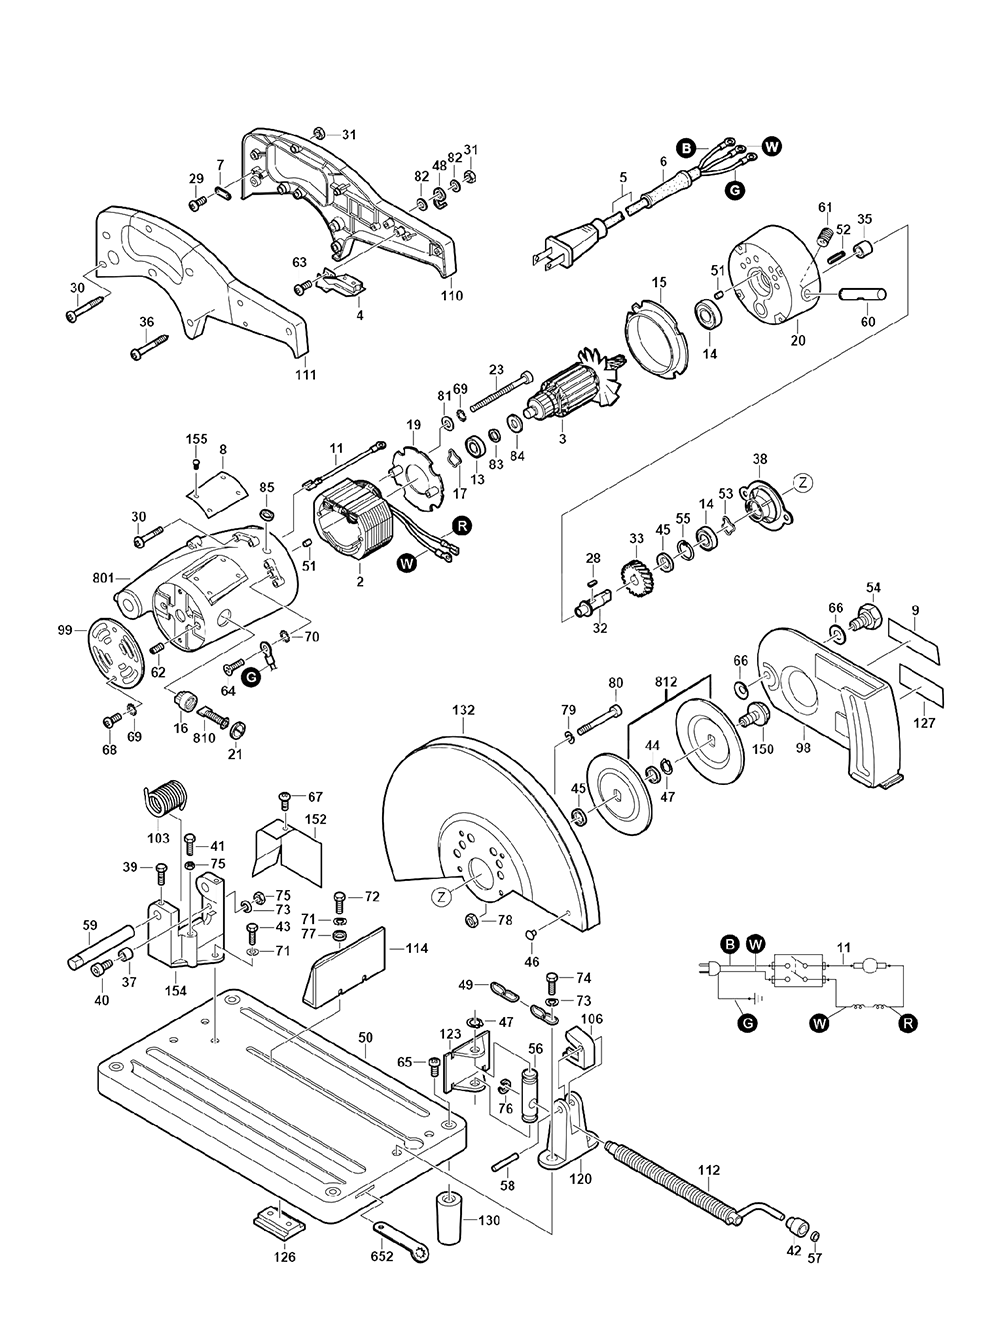 Unit Parts Diagram And Parts List For Skil Sawparts Model Hd77